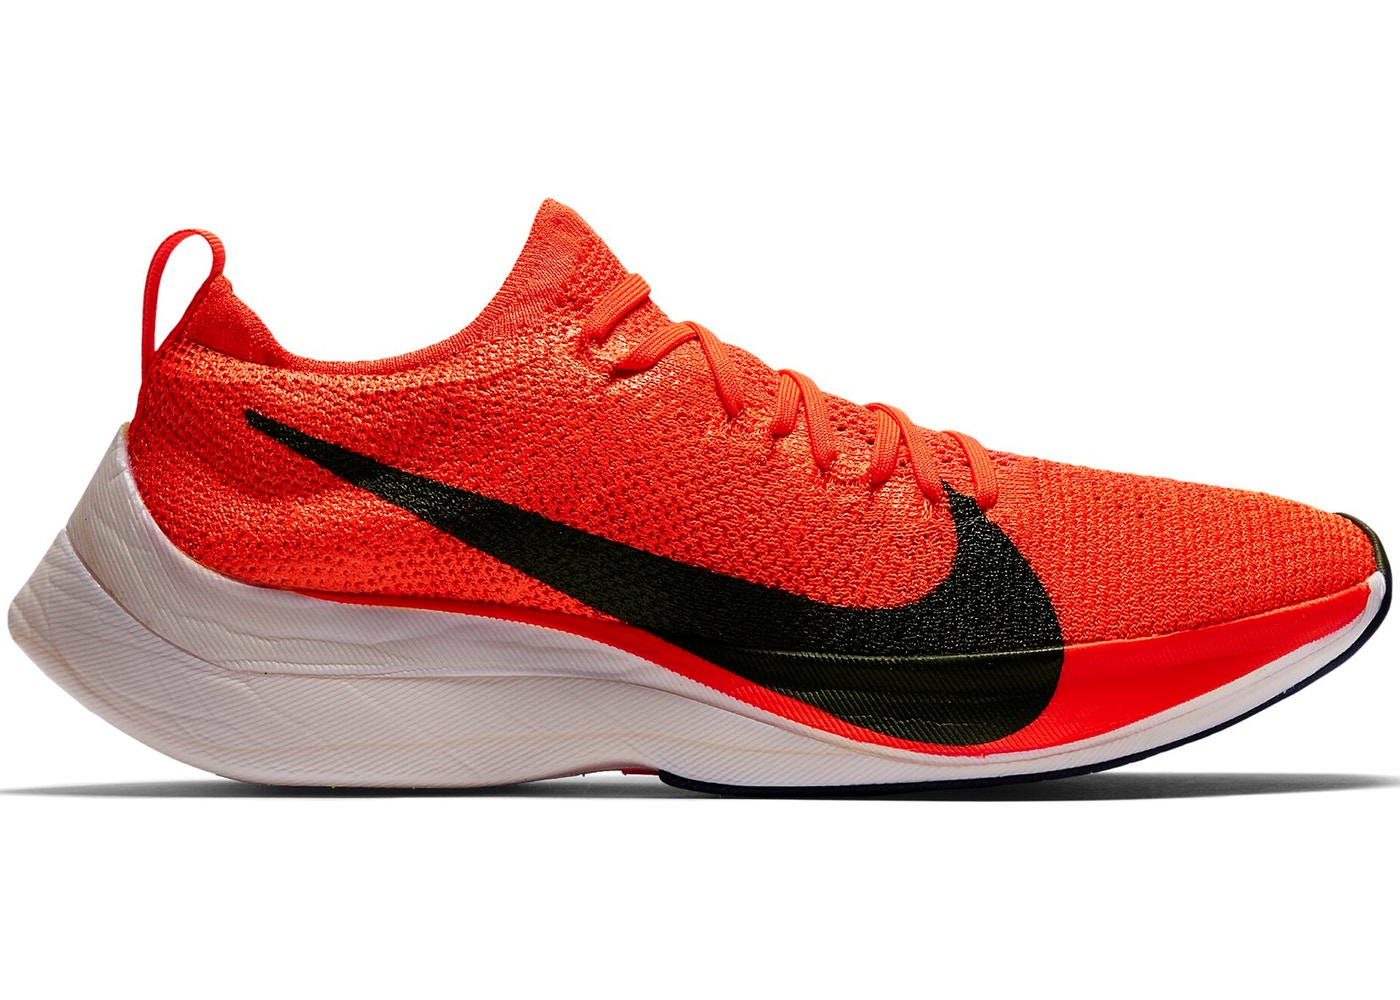 897b5430cbb3 Nike Zoom Vaporfly Elite Breaking2 - 880849-600